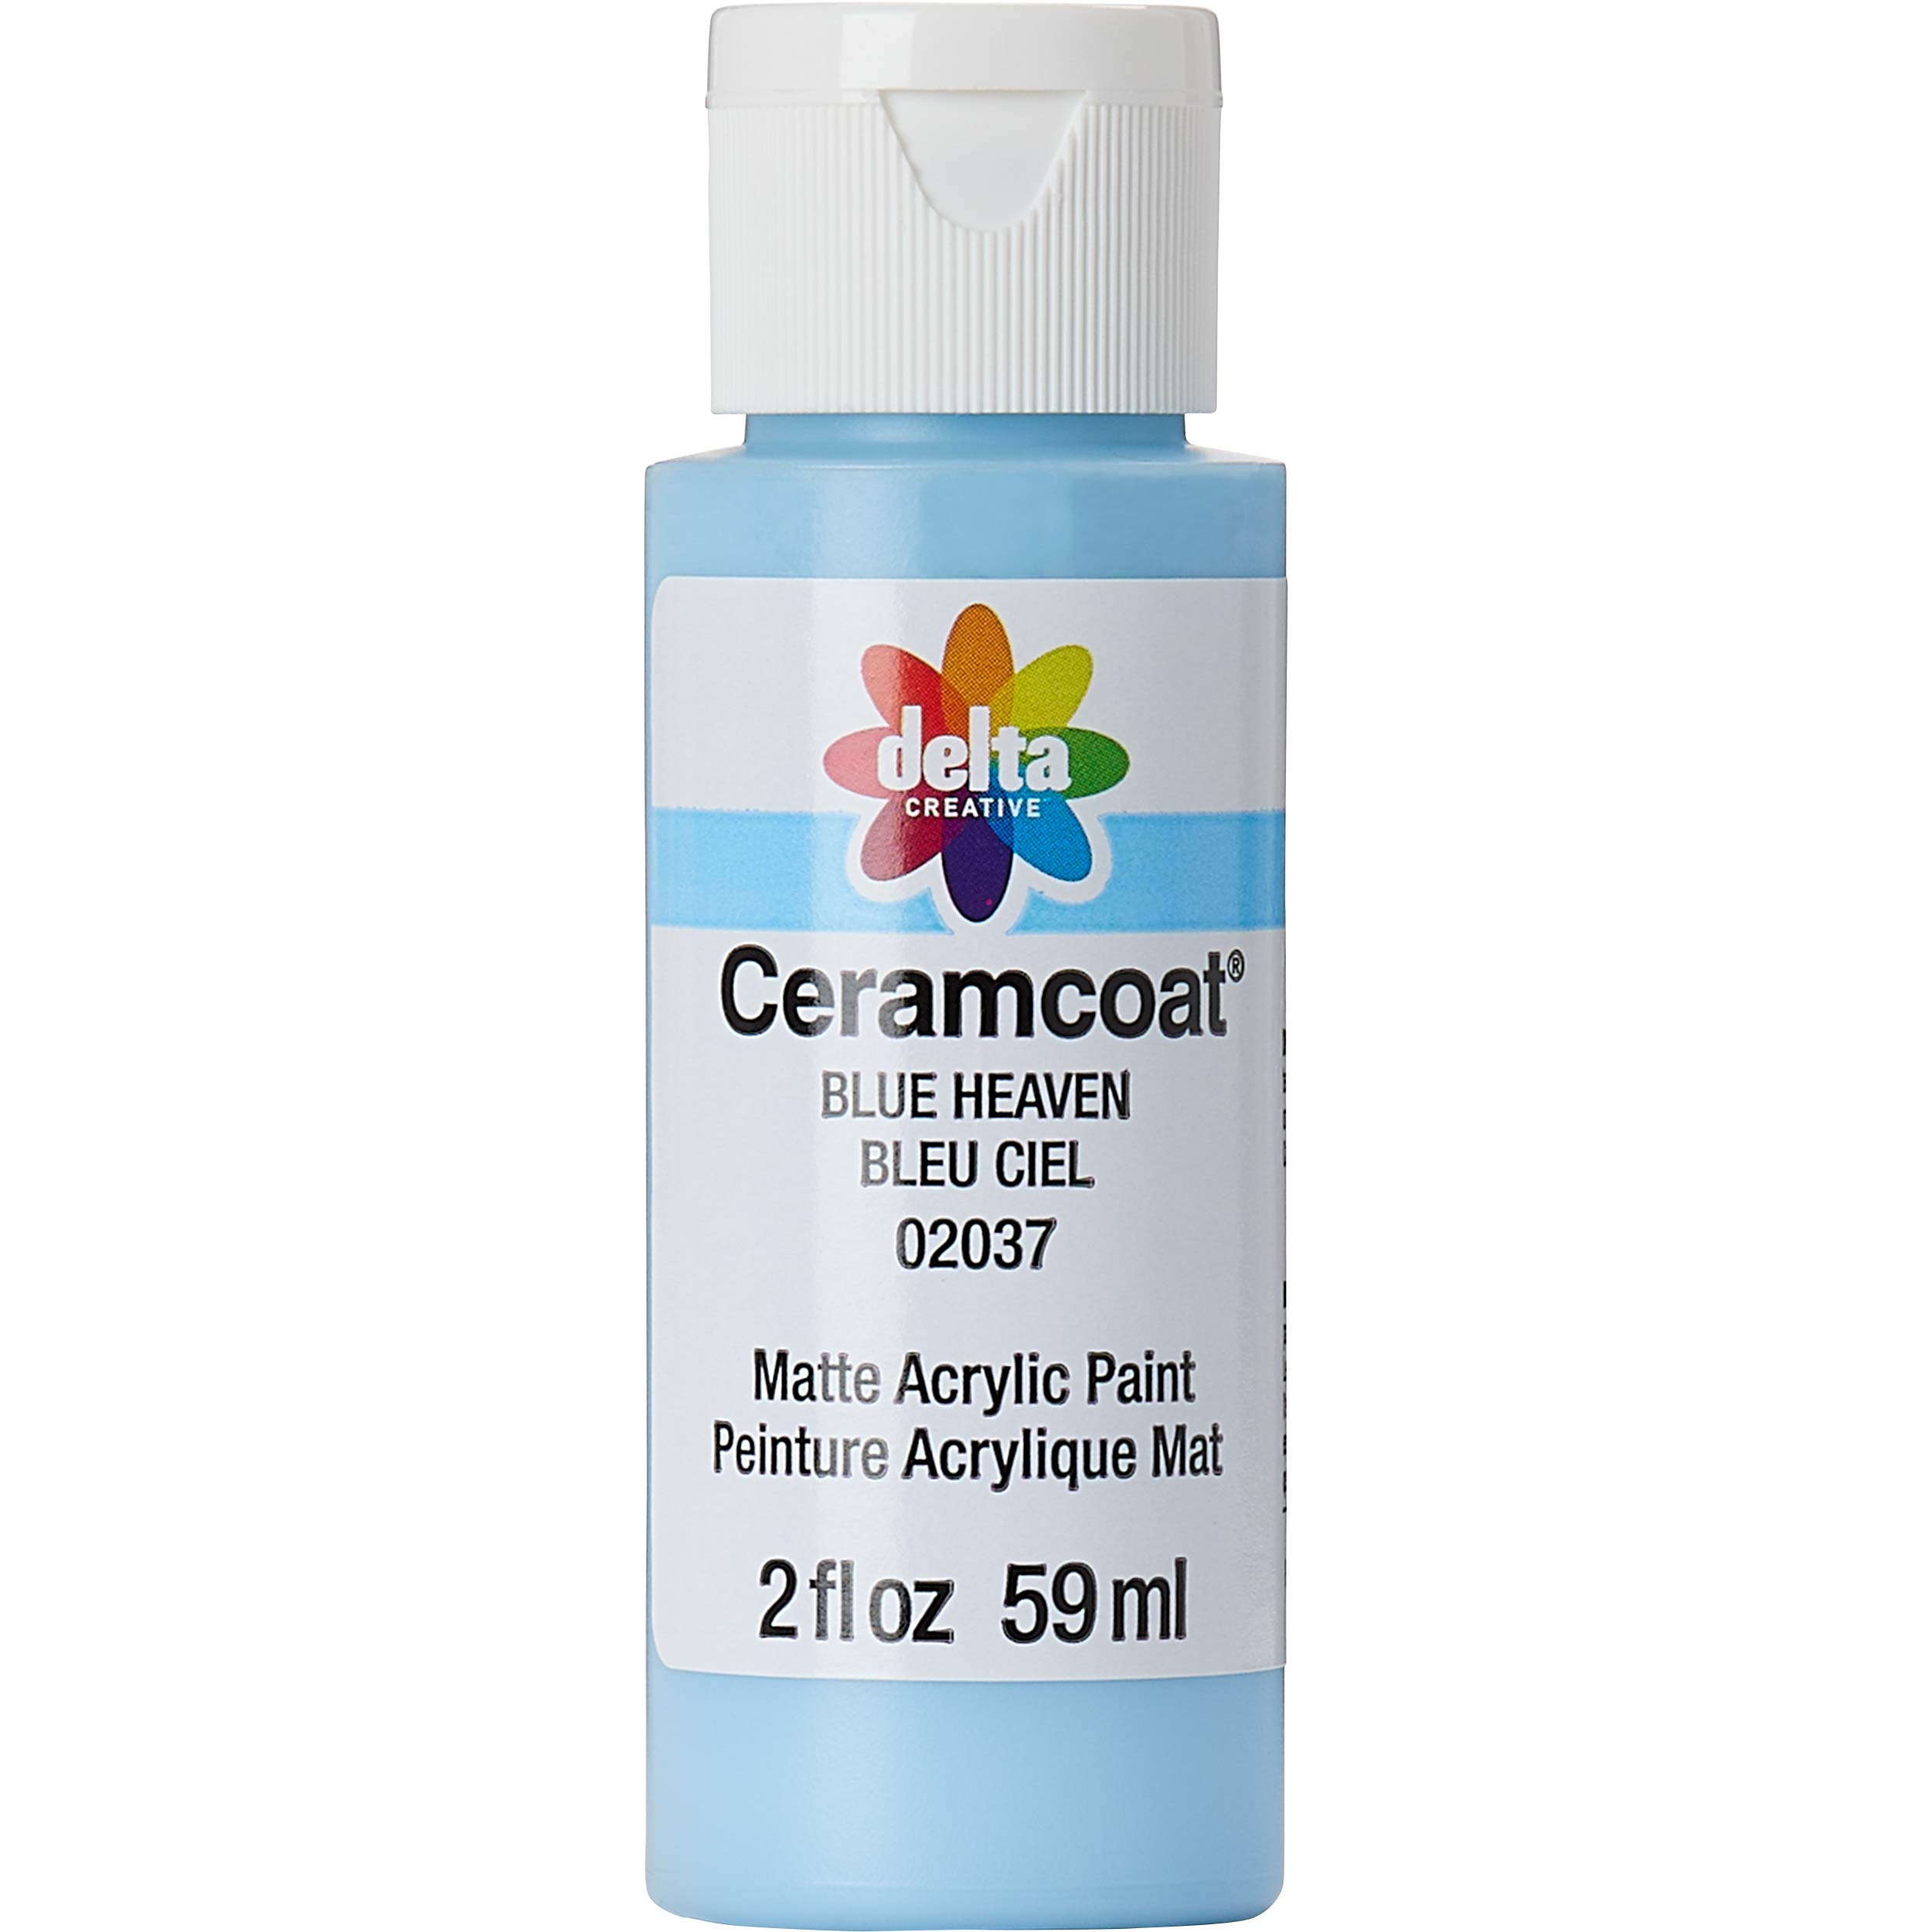 Delta Ceramcoat ® Acrylic Paint - Blue Heaven, 2 oz. - 020370202W